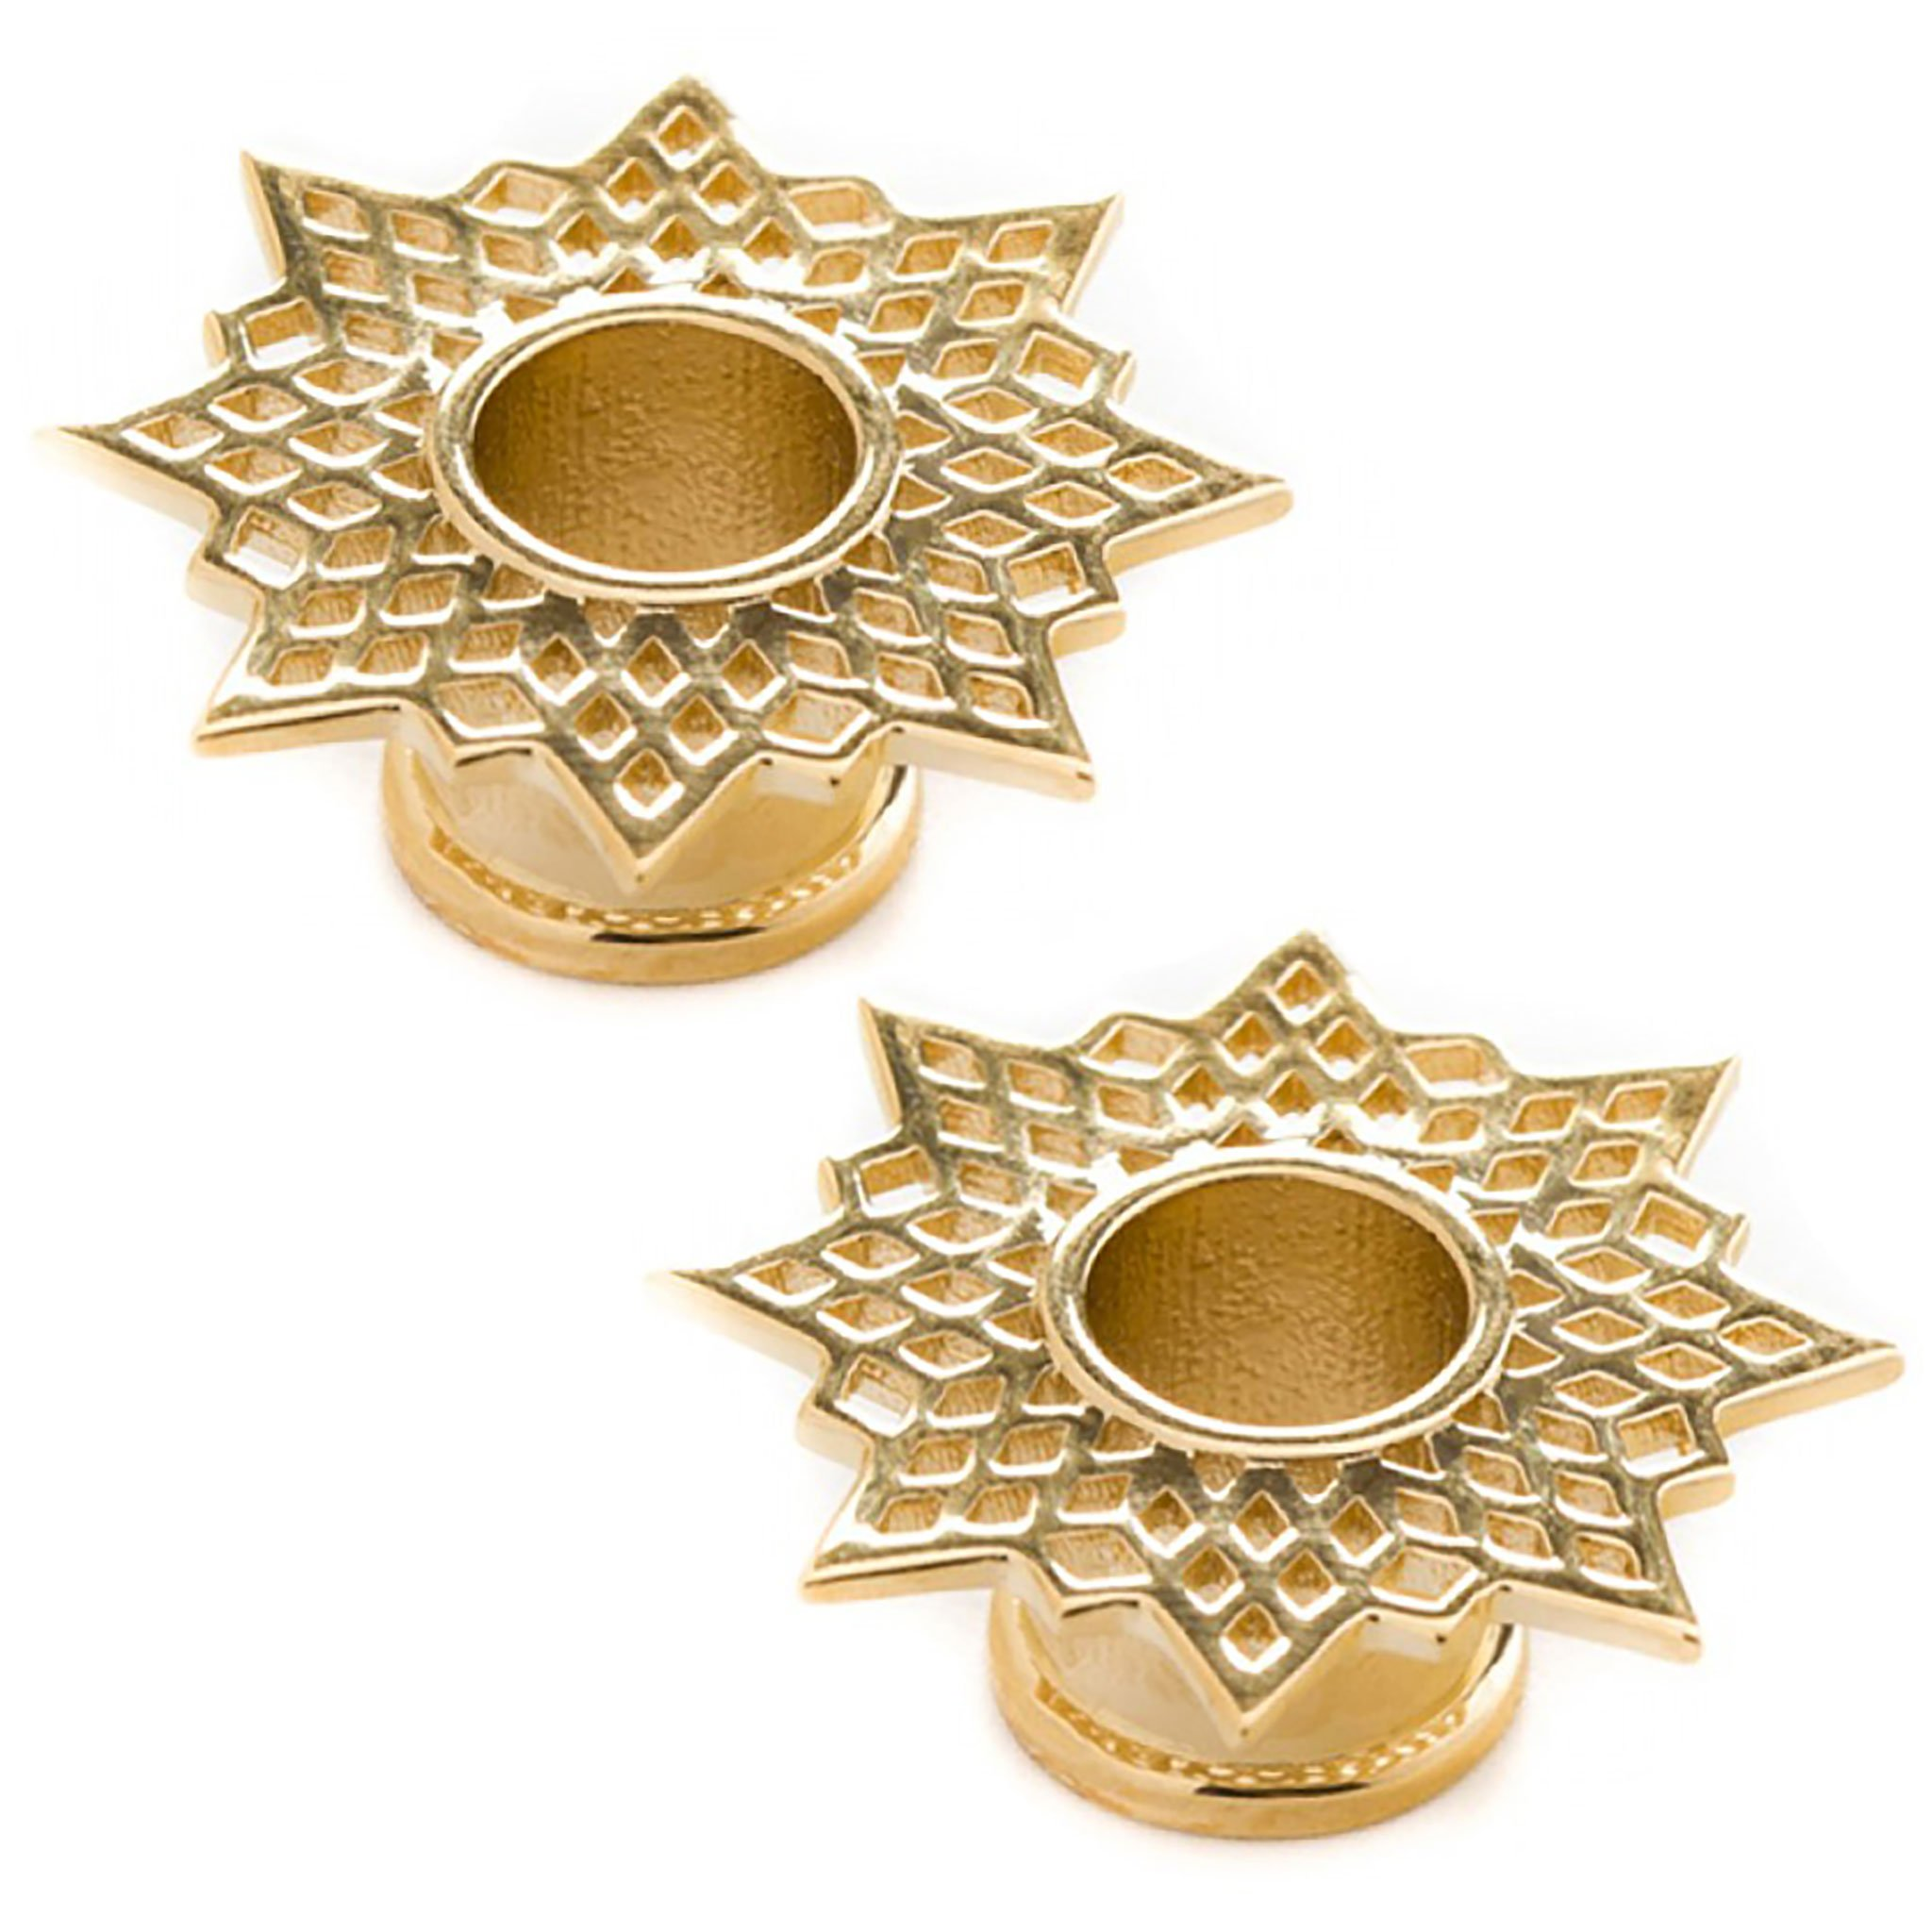 Steel Navel Body Jewelry Pair of Gold Plated Double Flared Supernova Eyelets: 7/16''